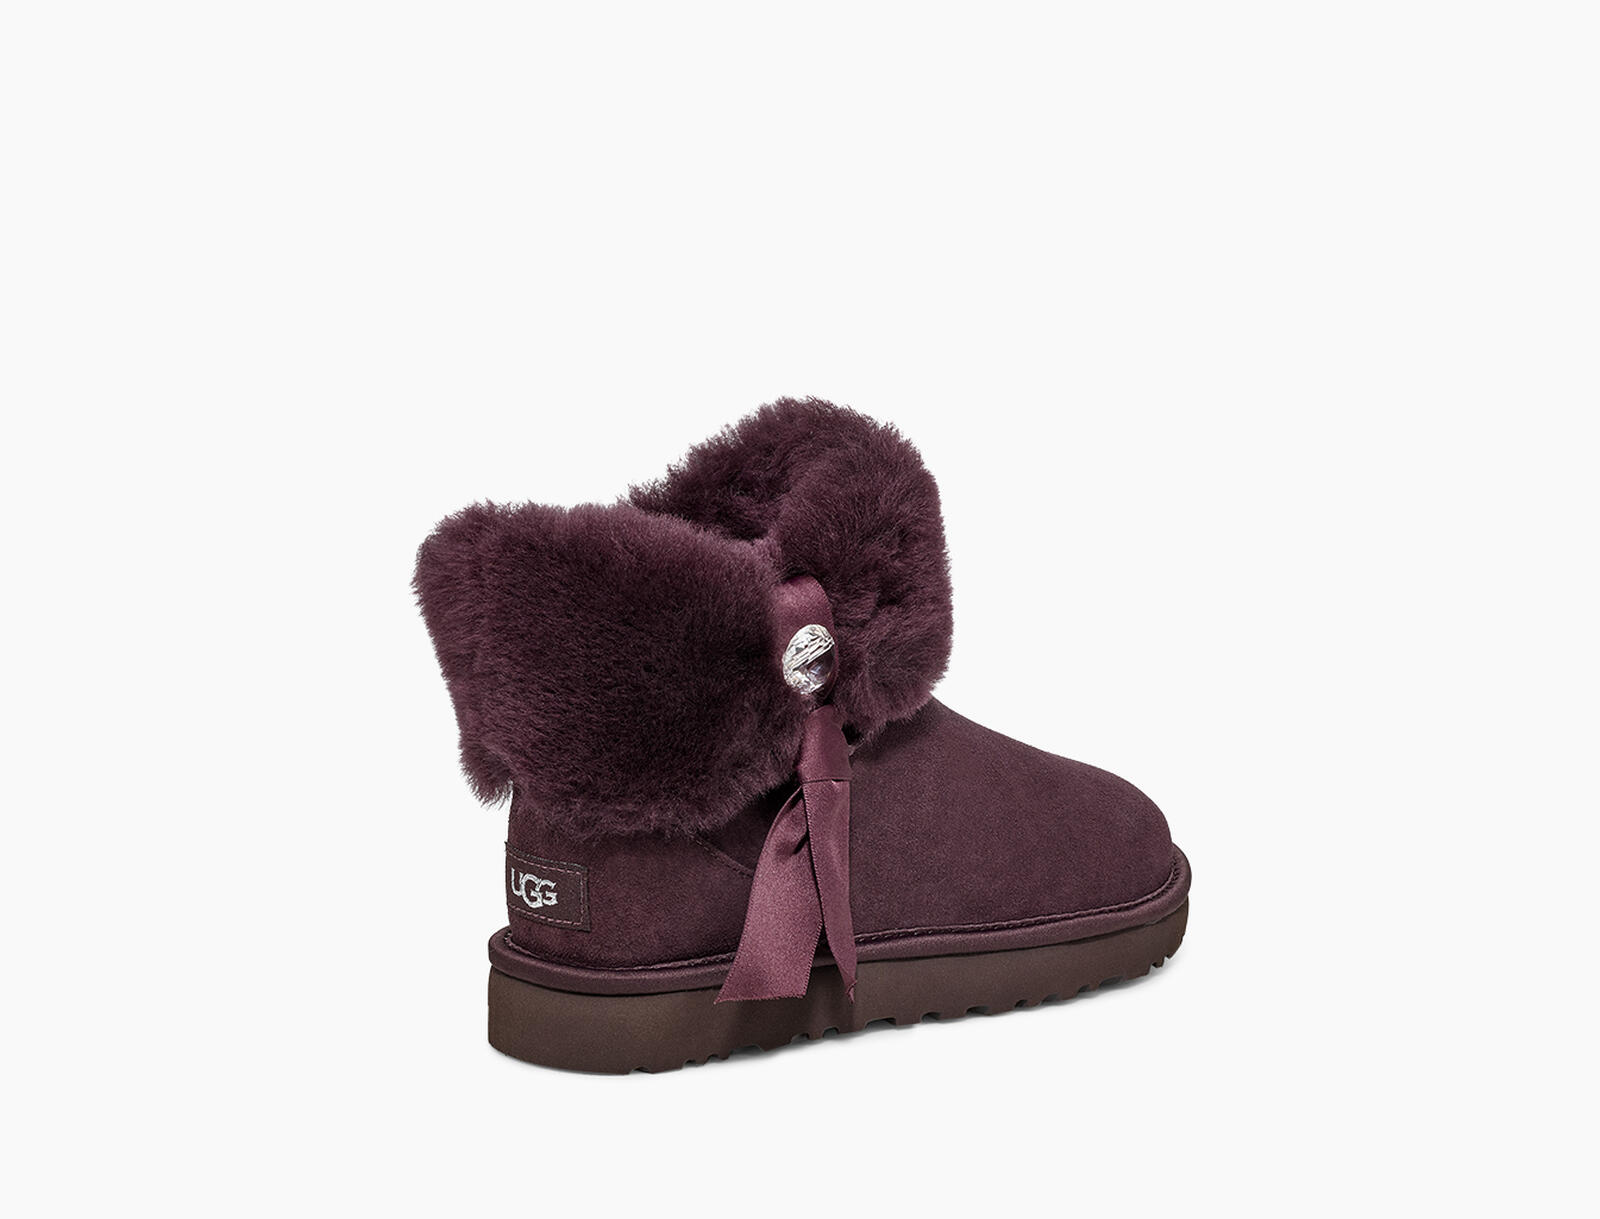 Cinched Fur Mini Stiefel